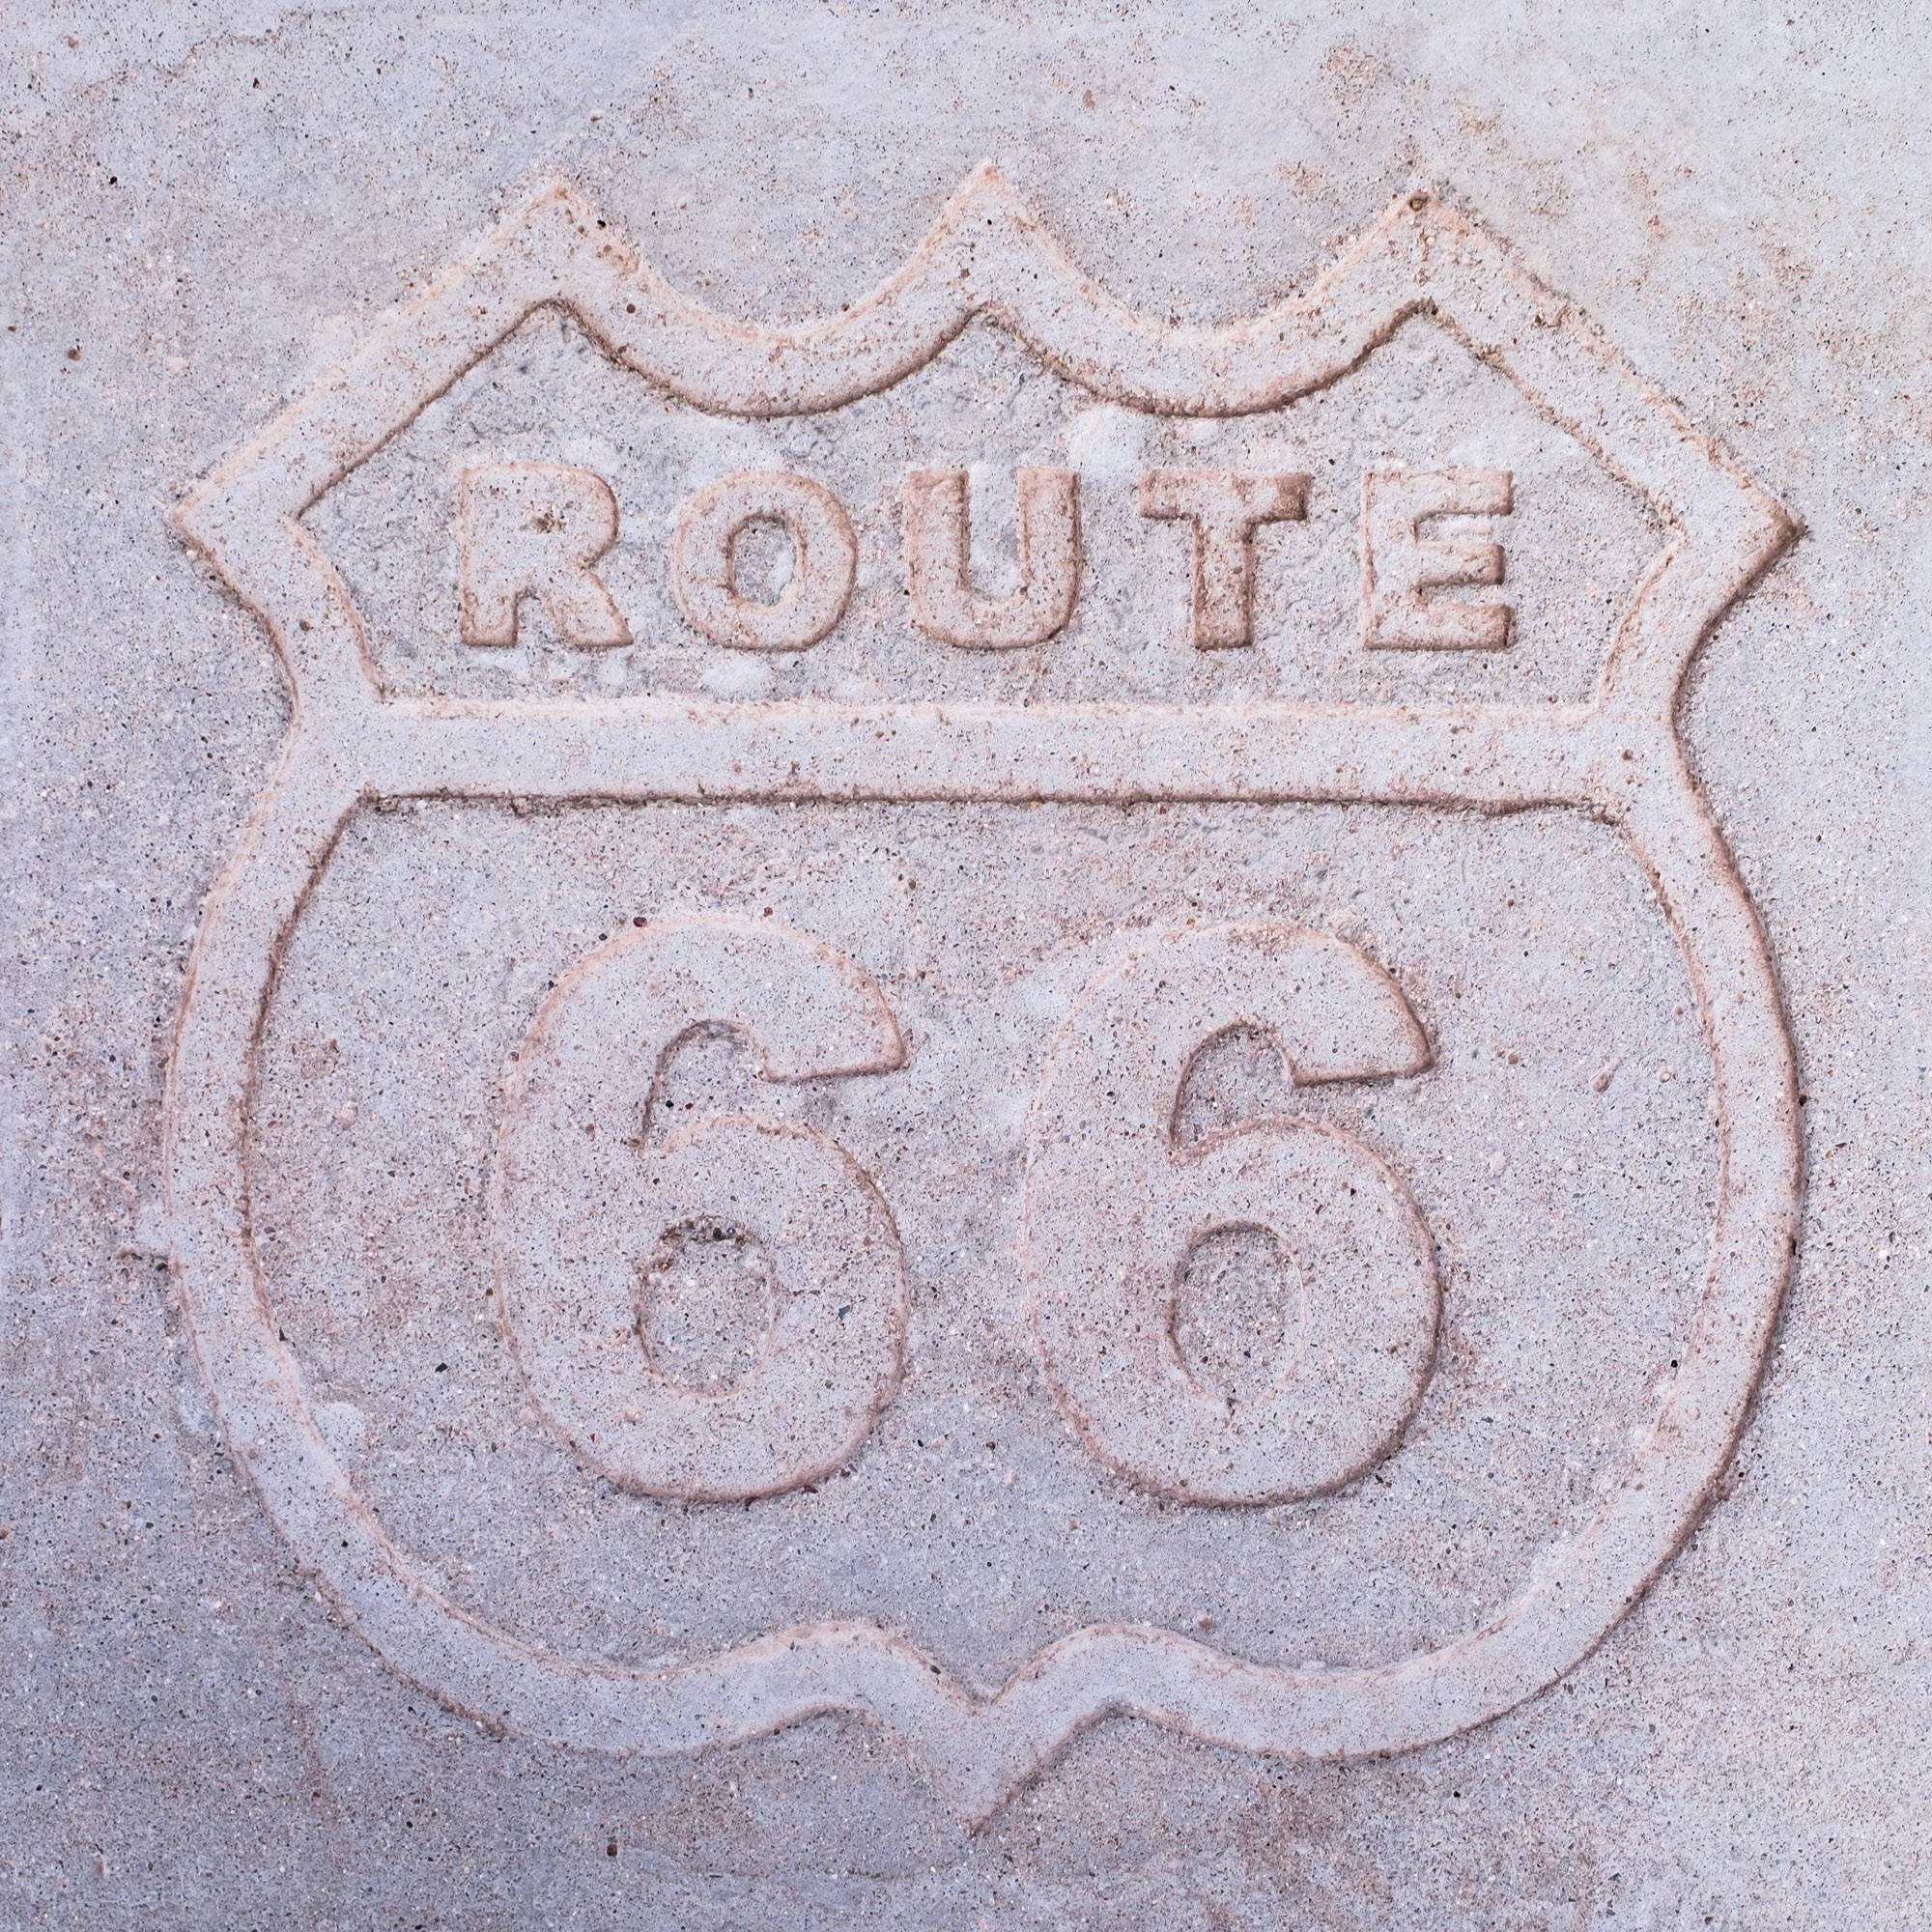 Petrified Forest in Arizona is the only national park where you can plant your feet on America's famed historic Route 66.